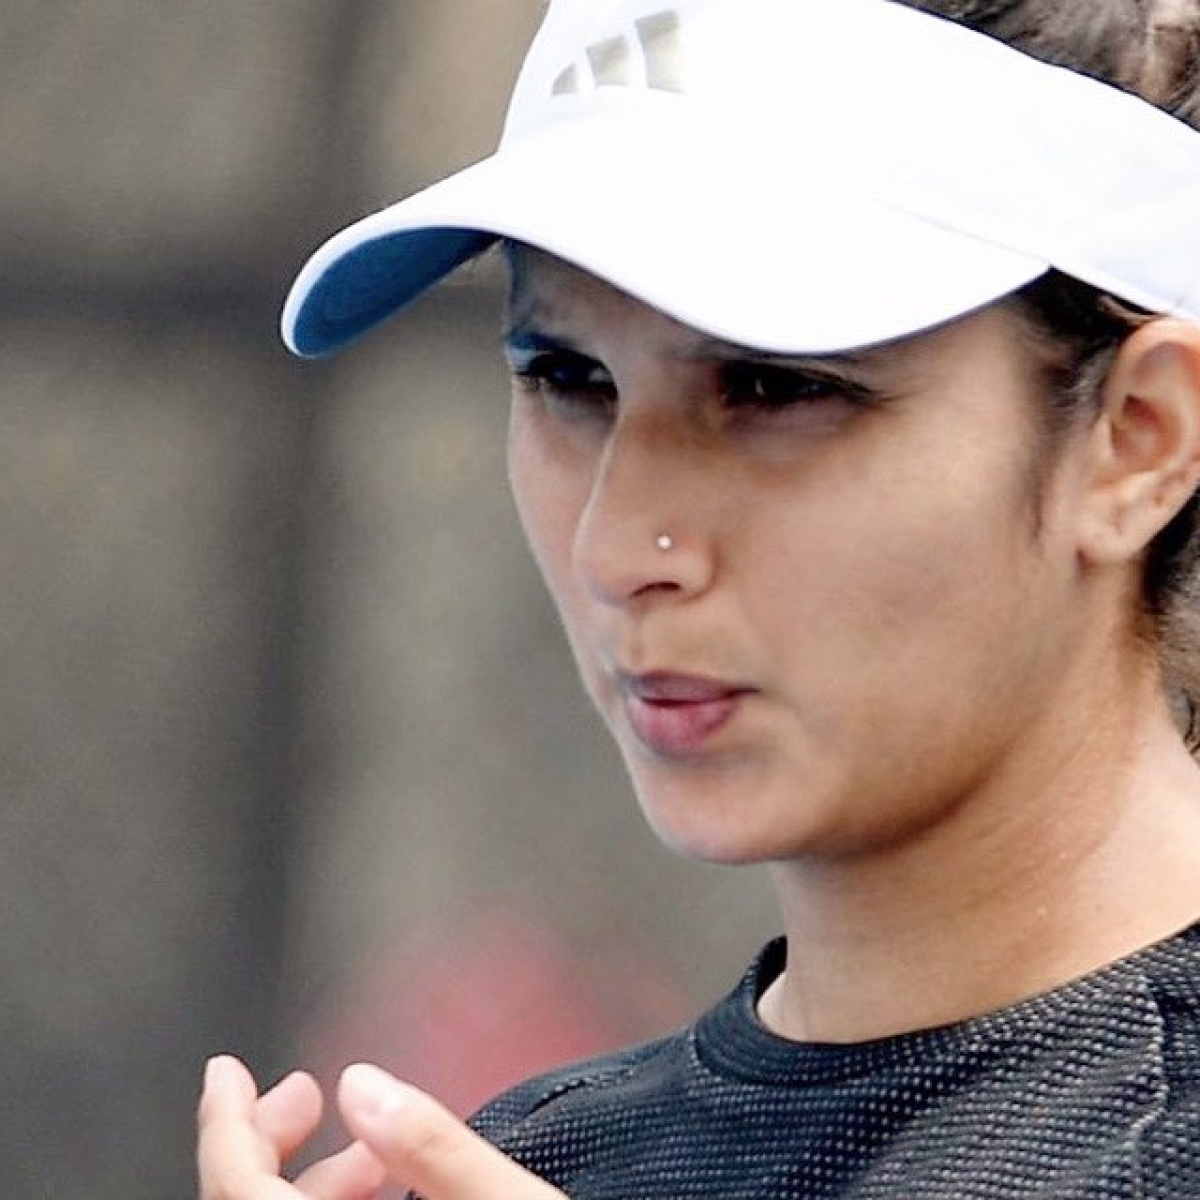 Sania Mirza praises Telangana govt after being proactively checked for her well-being